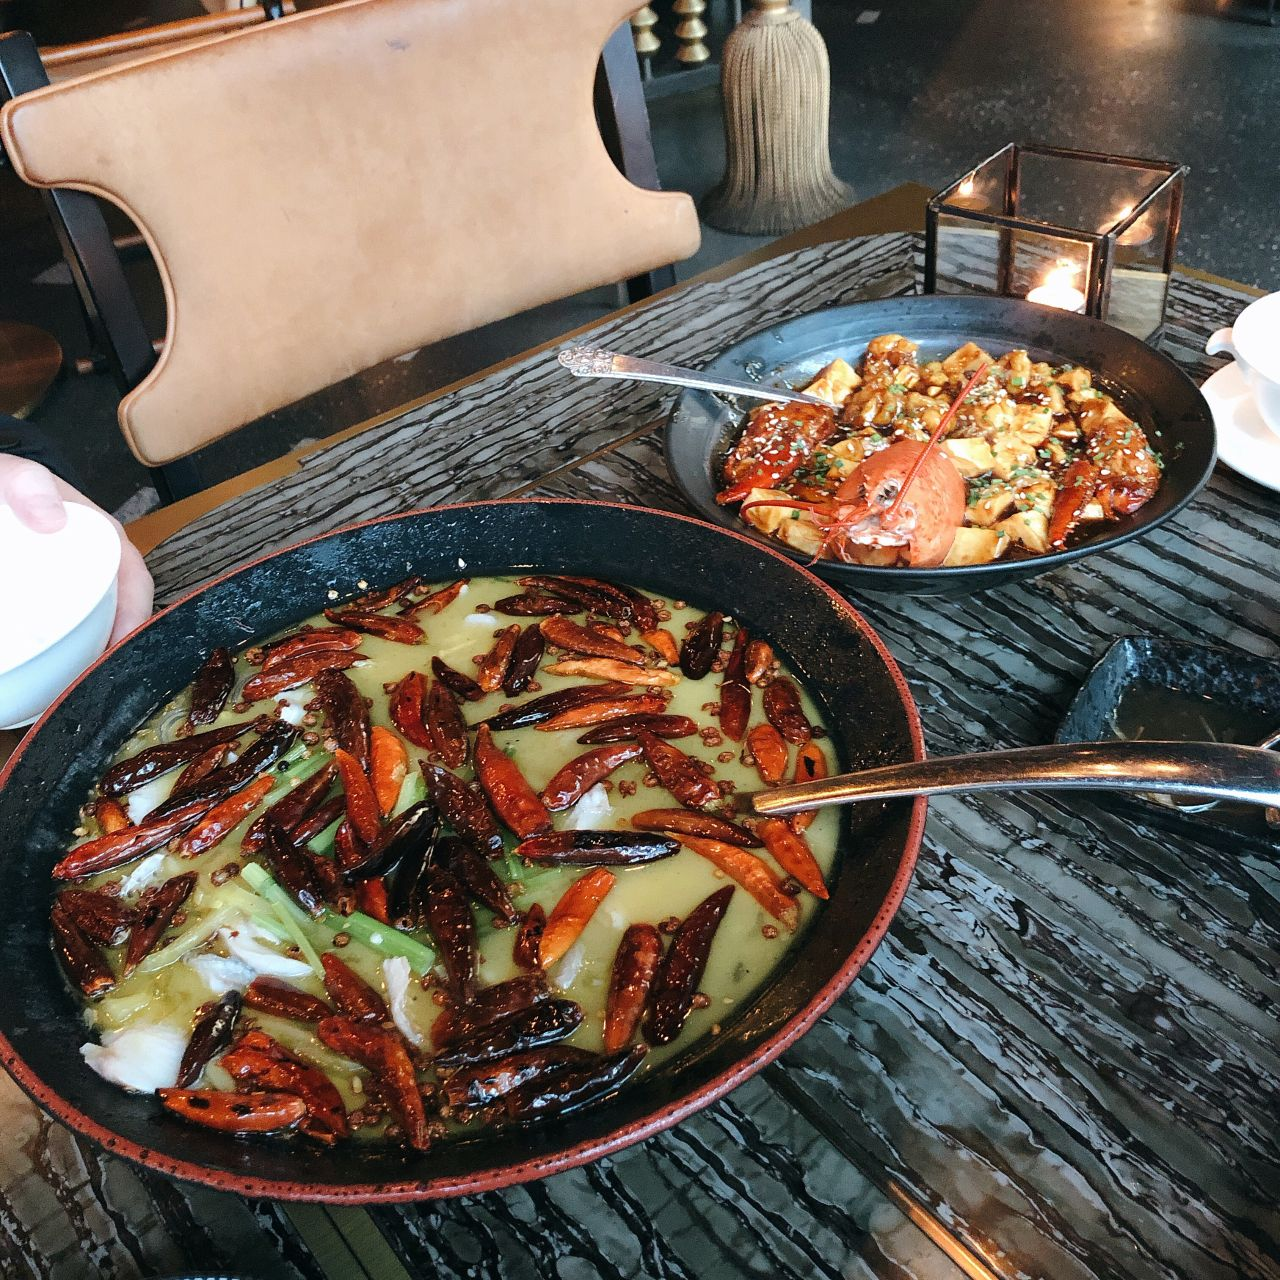 Mott 32 - Vancouver - Vancouver, BC | OpenTable